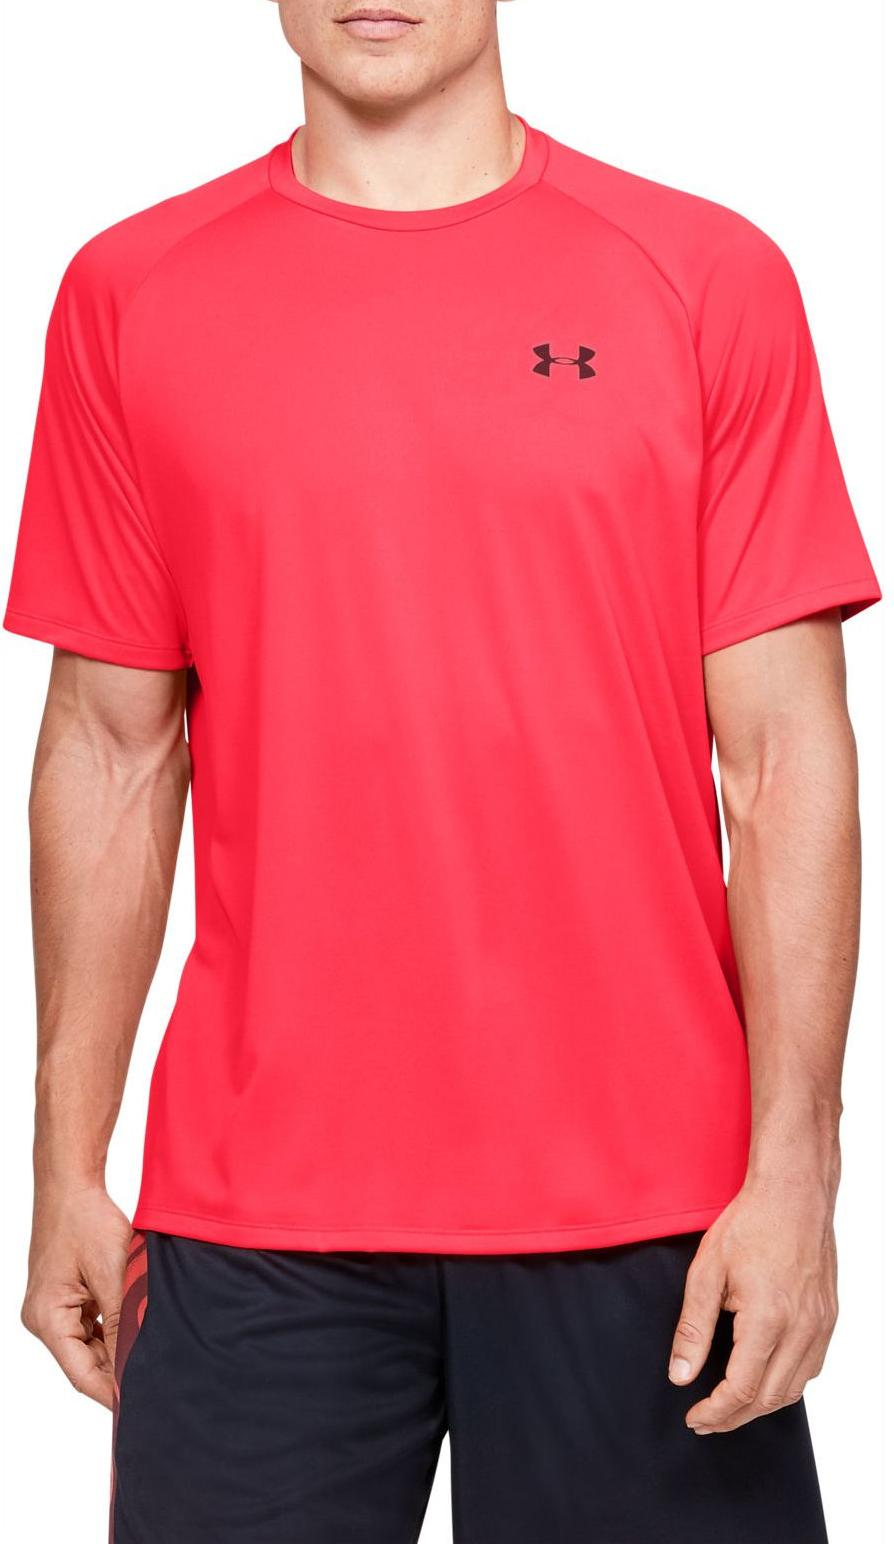 Under Armour UA Tech 2.0 SS Tee Rövid ujjú póló